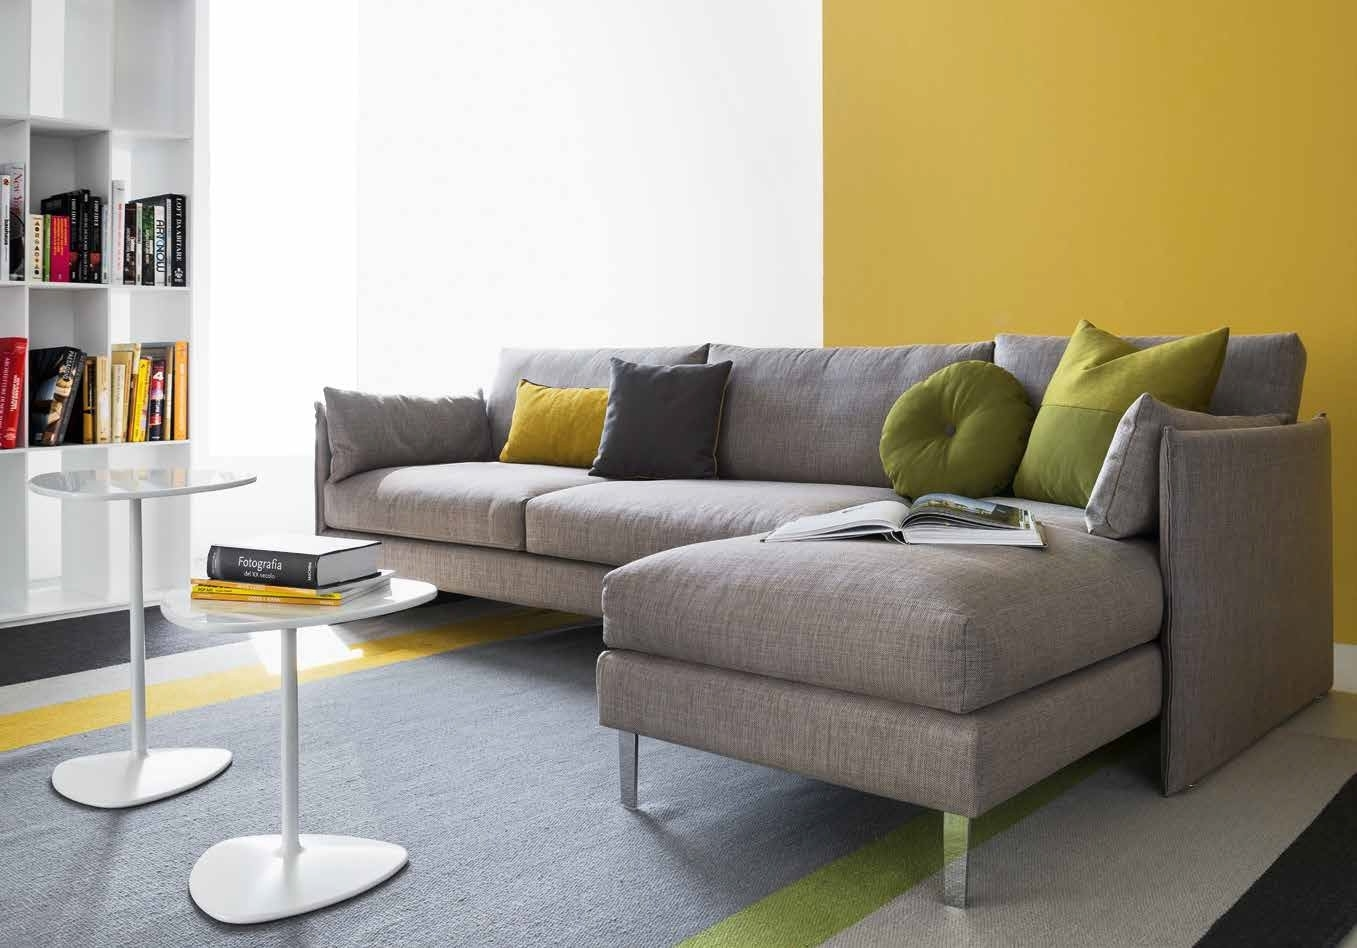 Urban Sectional Sofa Cs/3369, Calligaris Italy - Italmoda Furniture intended for Nashua Nh Sectional Sofas (Image 10 of 10)